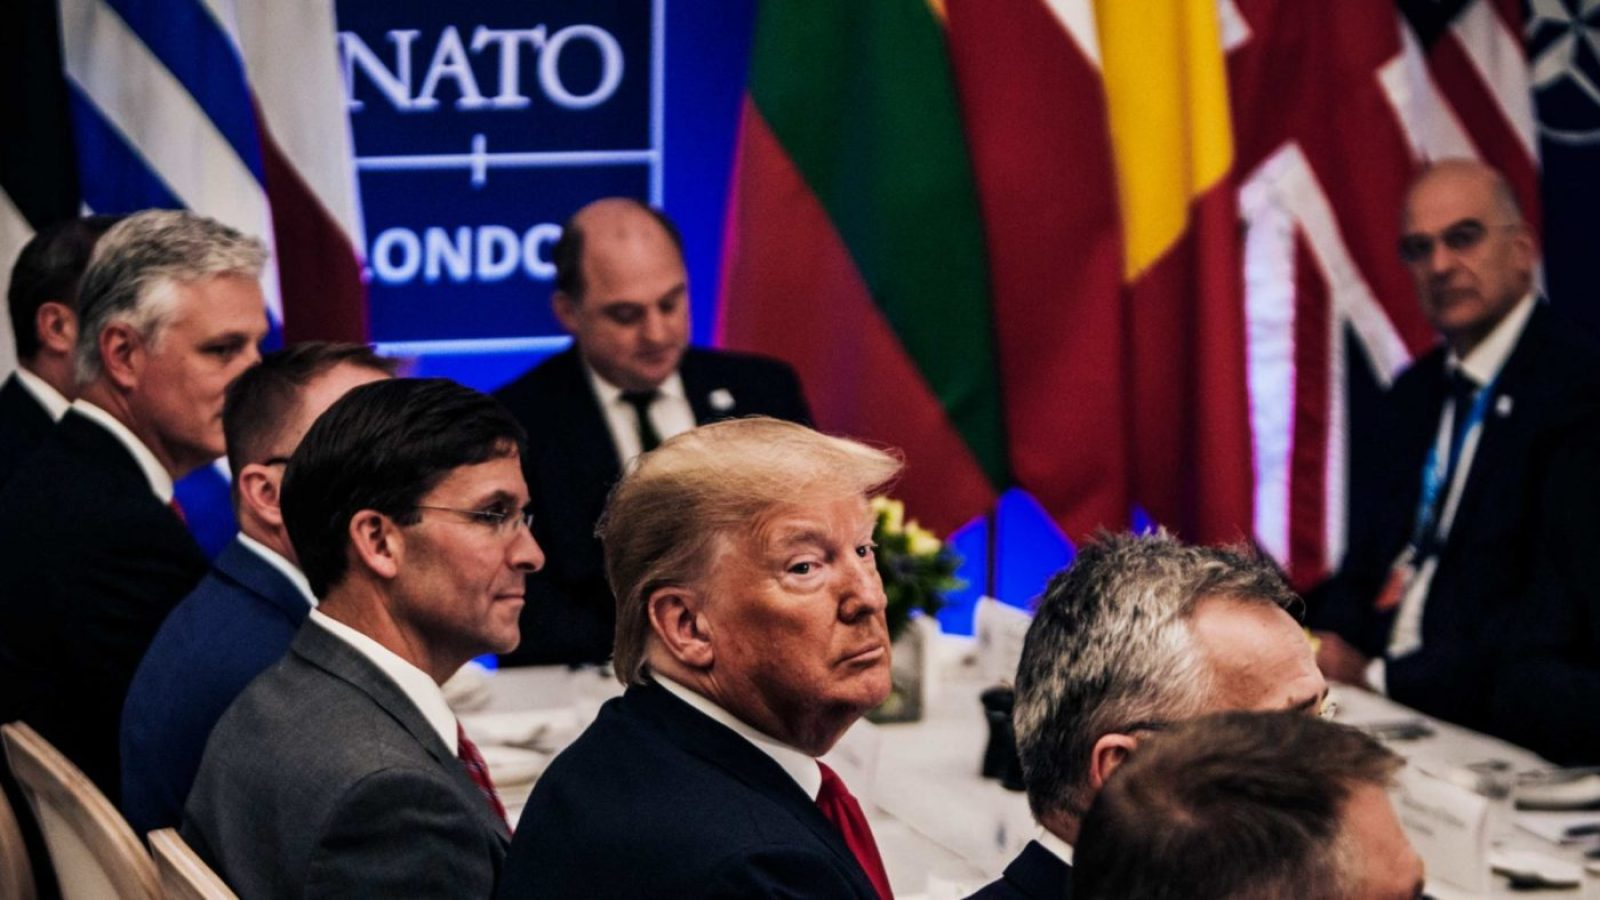 NATO members meeting with Trump and Esper in Washington